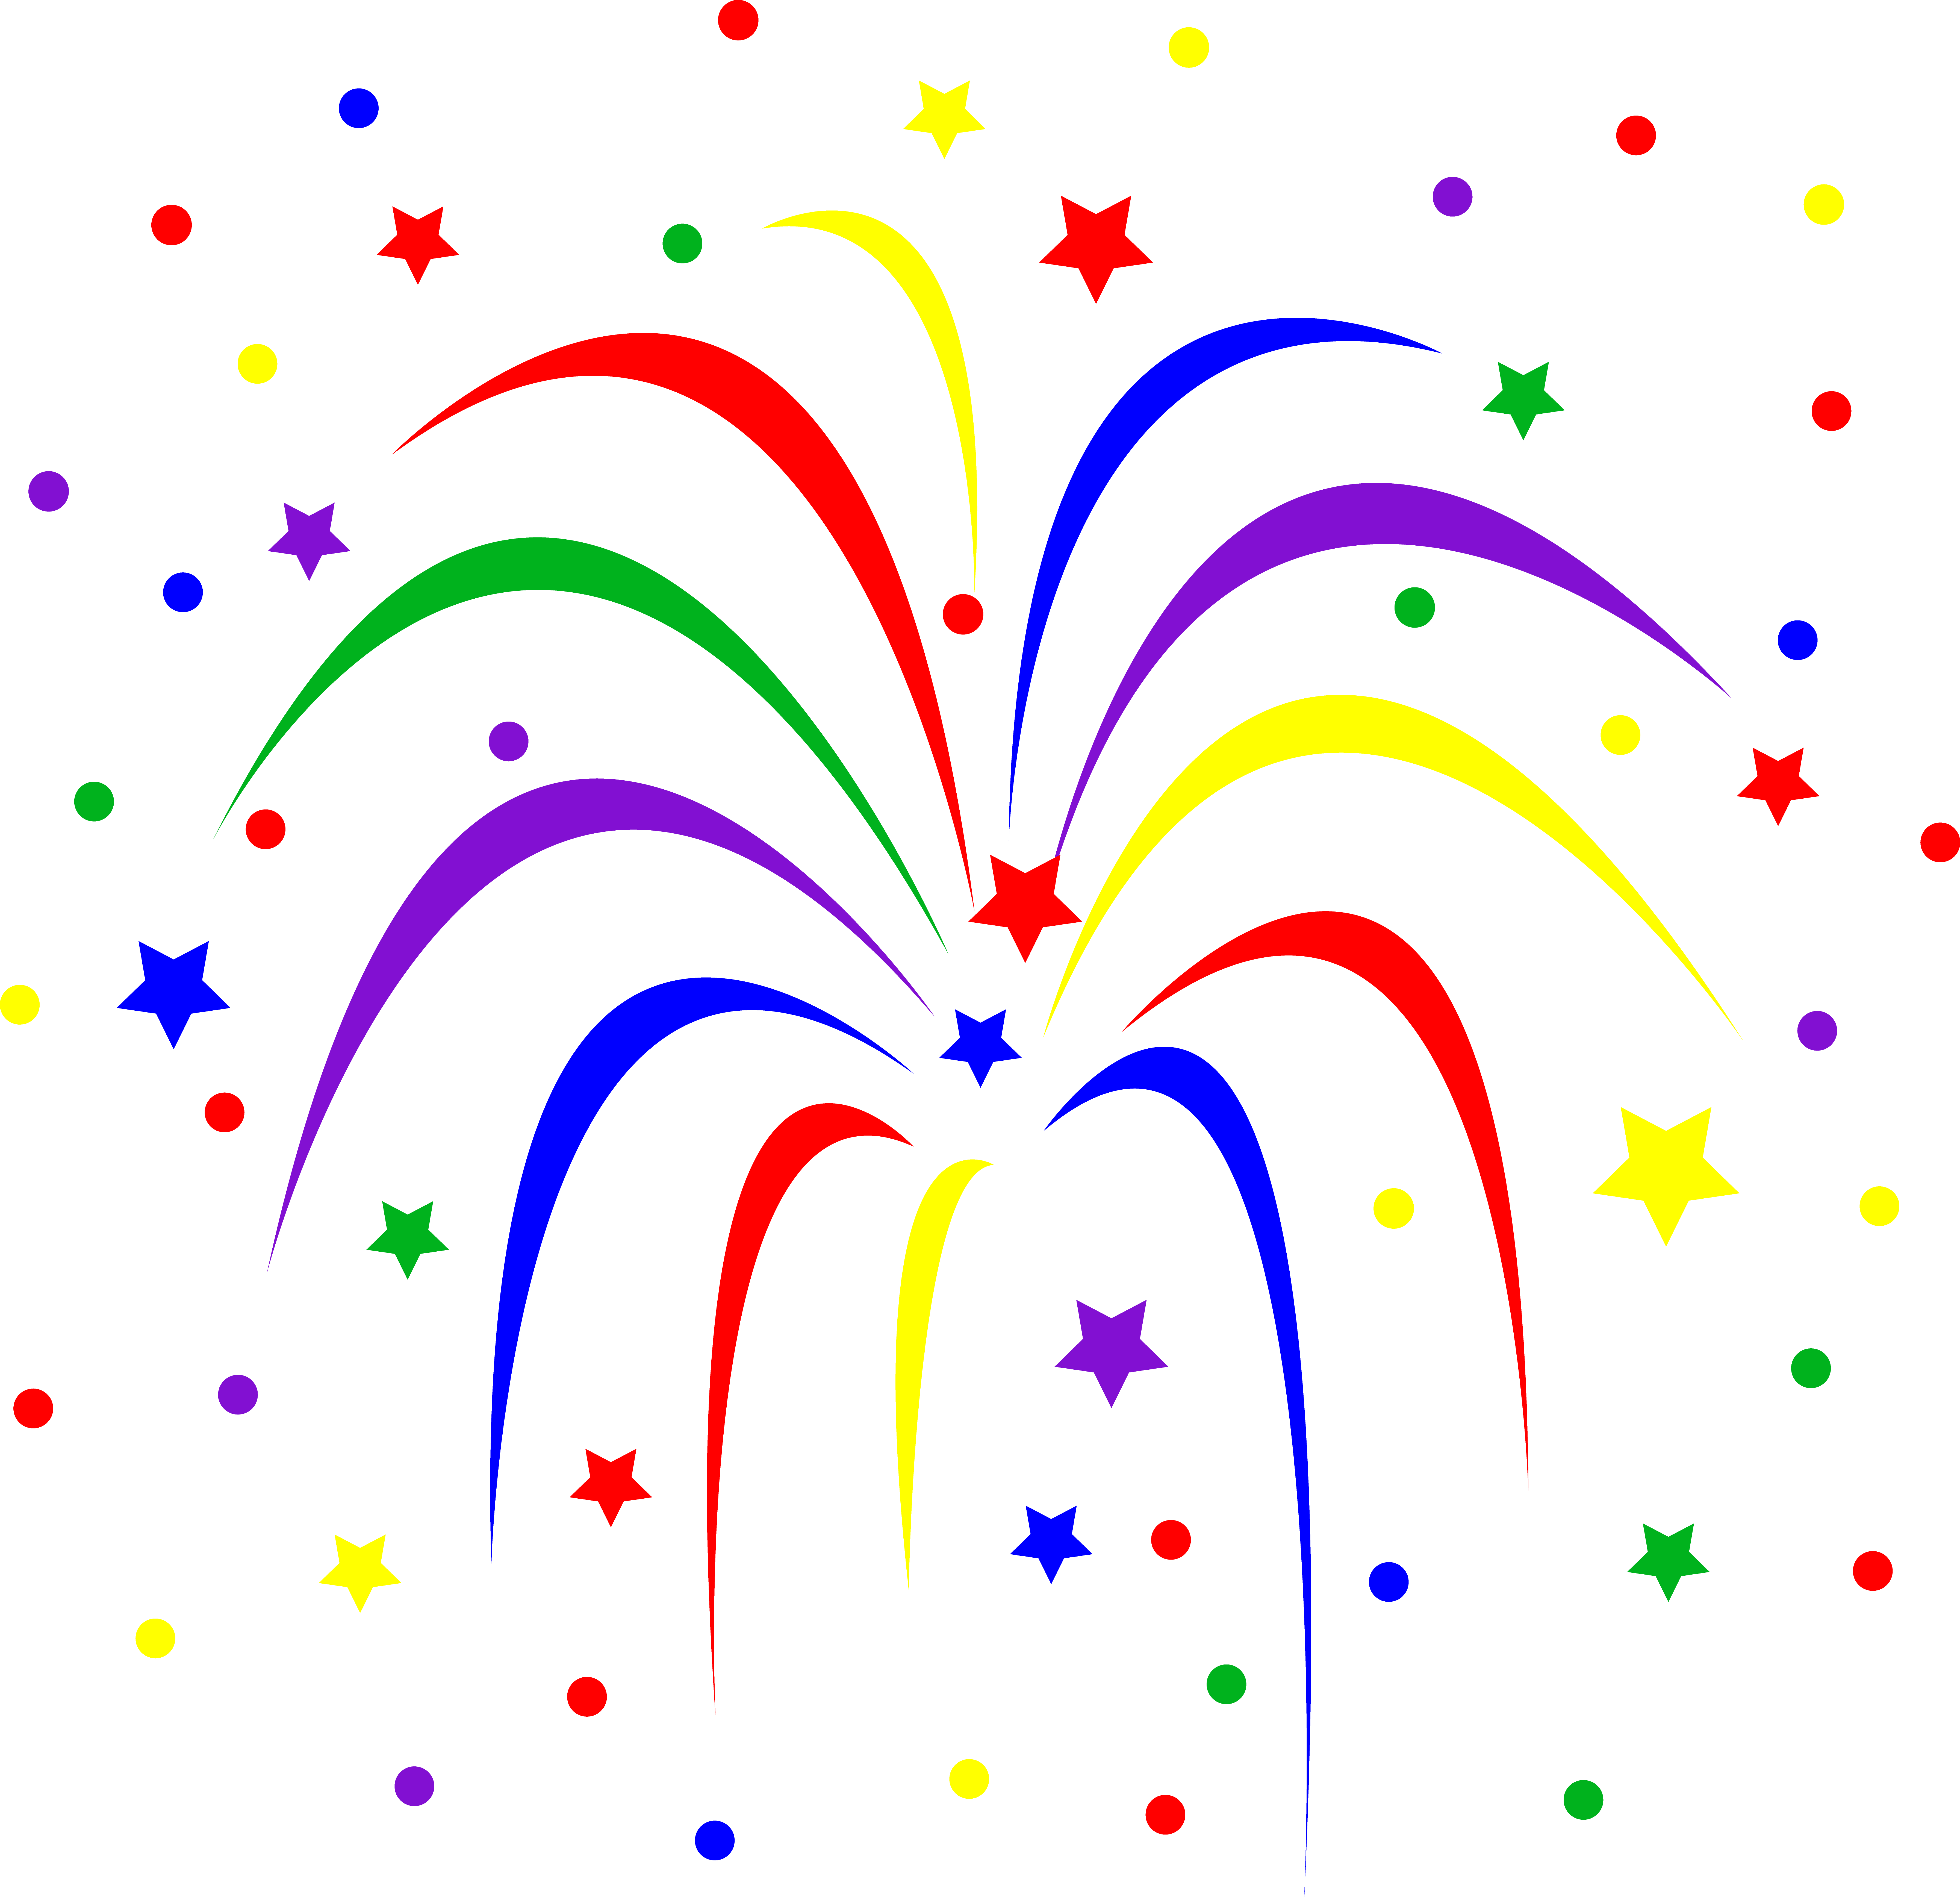 7175x6943 Fireworks Clipart No Background Free Clipart Images 2